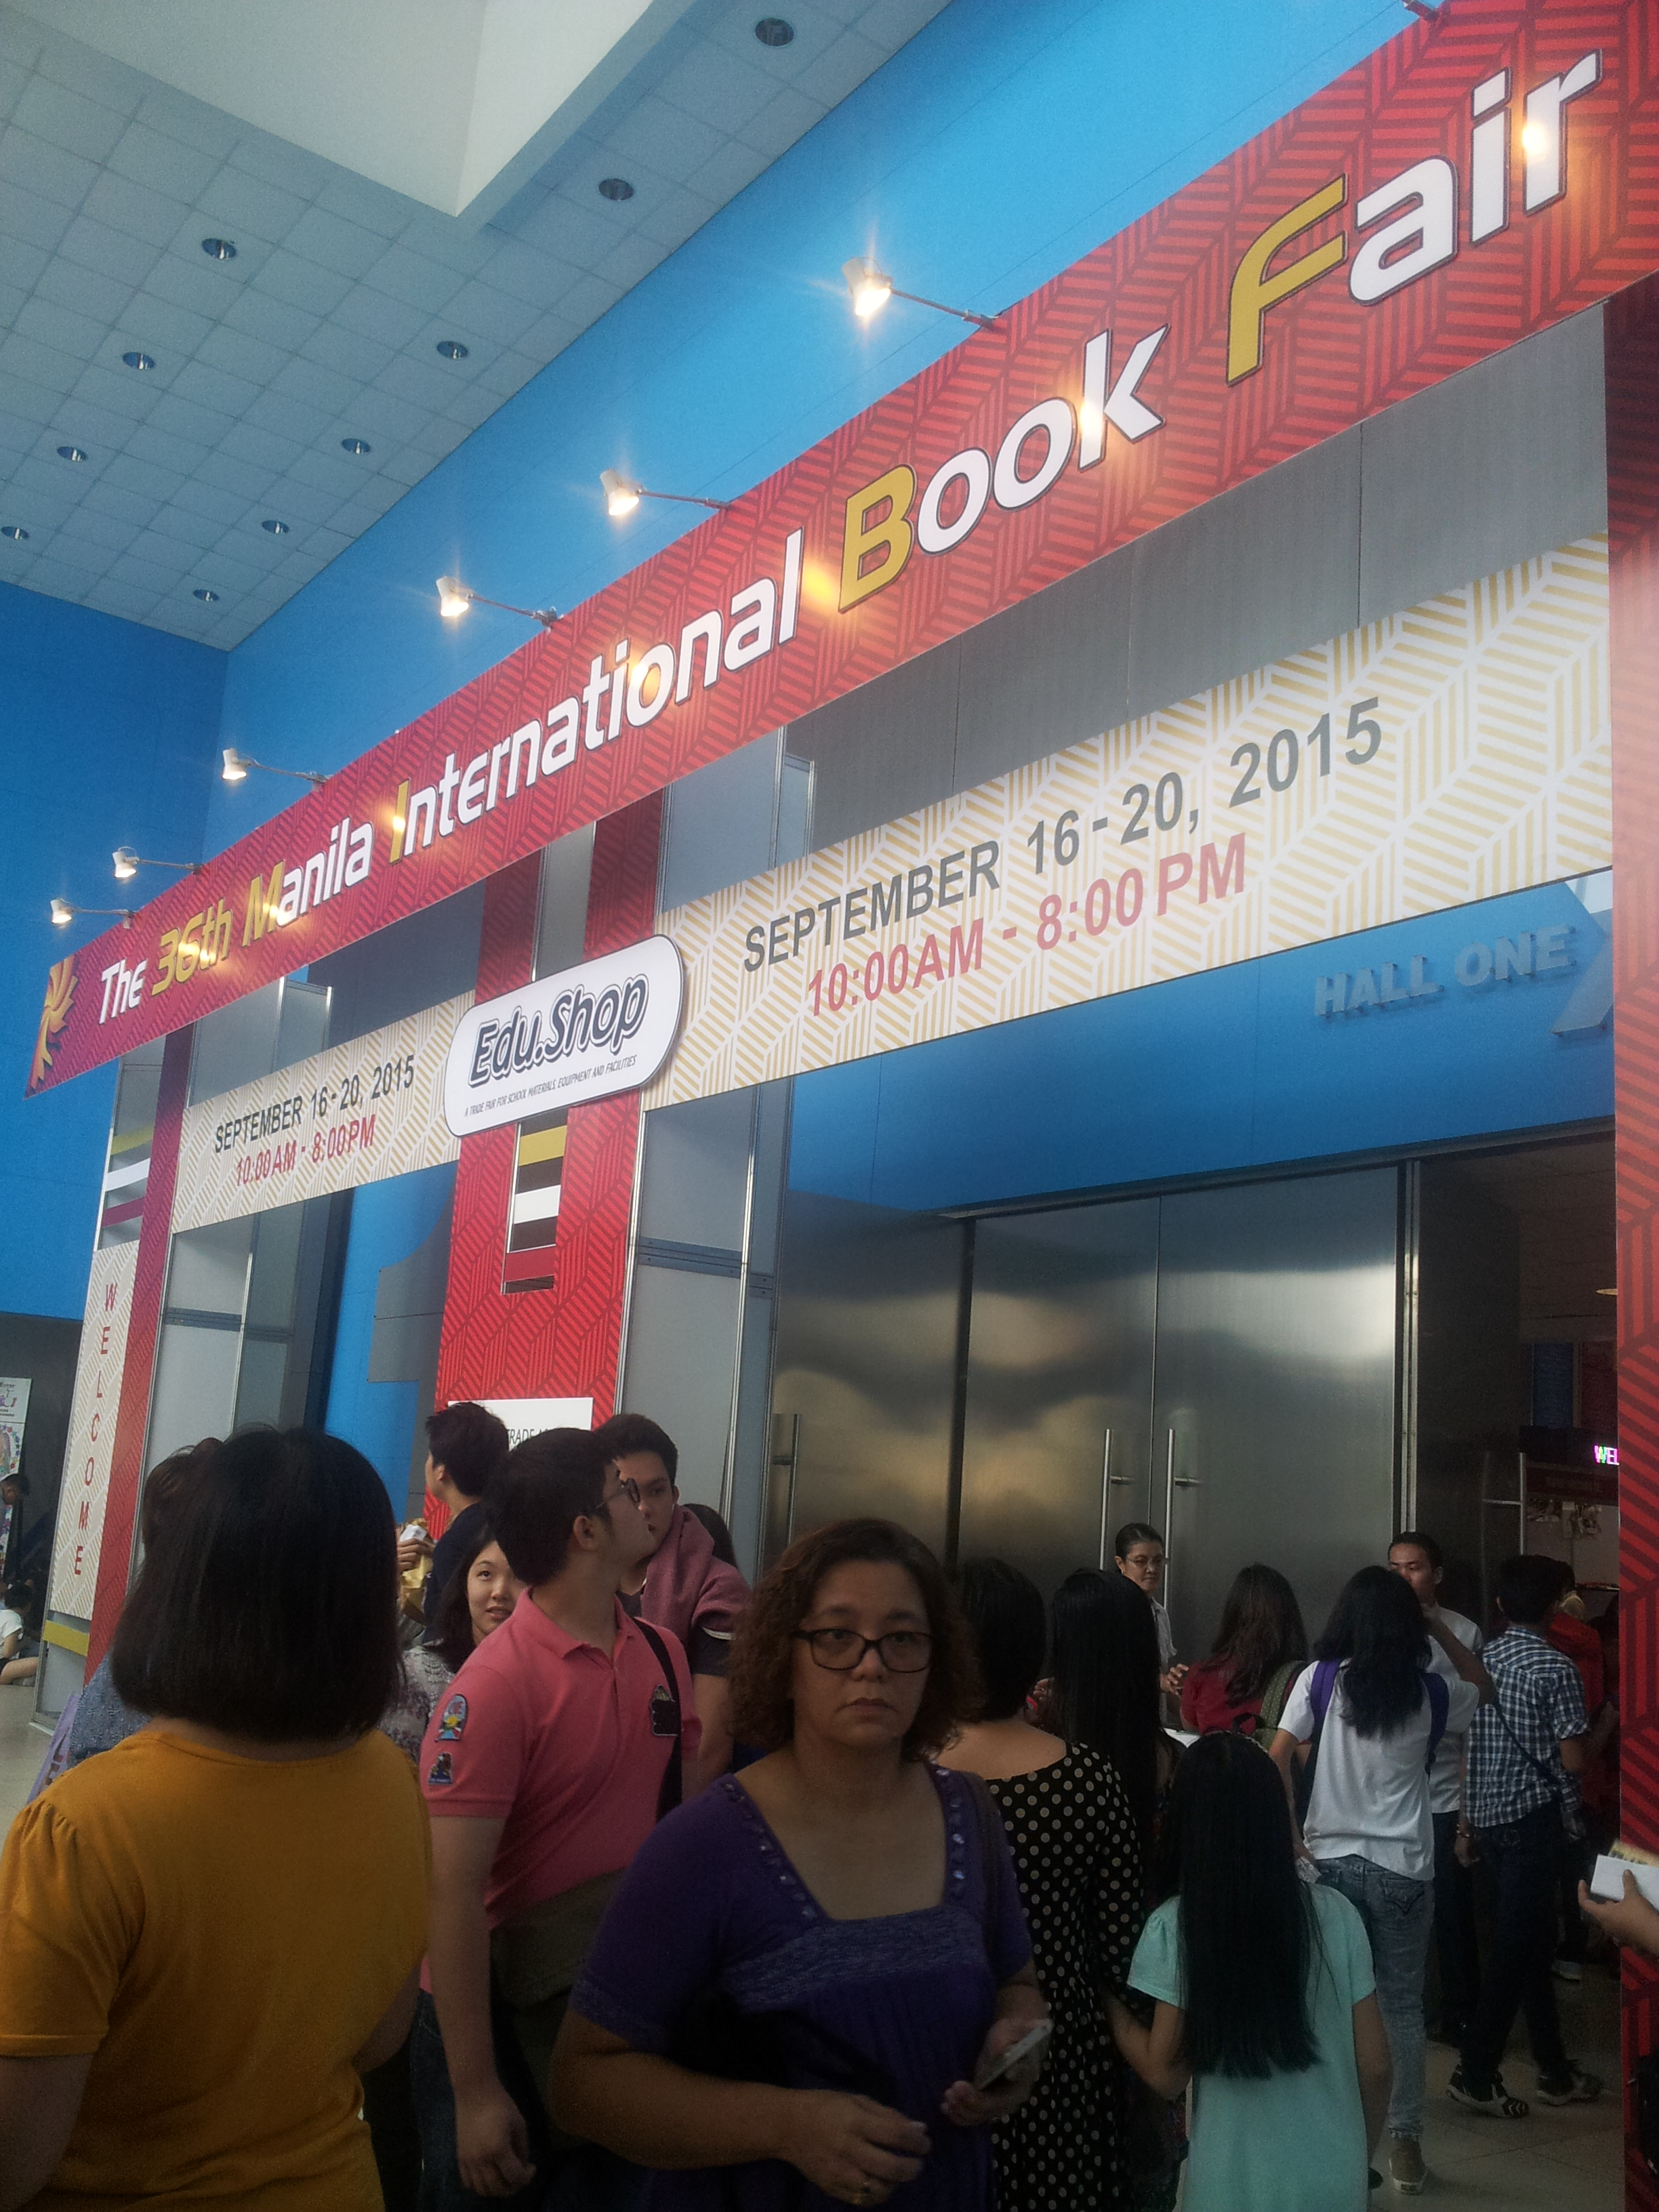 I attended the MIBF twice this year; first on Thursday (9/17), and then on Sunday (9/20). It wasn't a surprise how SMX was crowded during the weekend, what with a cosplay event happening simultaneously on the second floor.